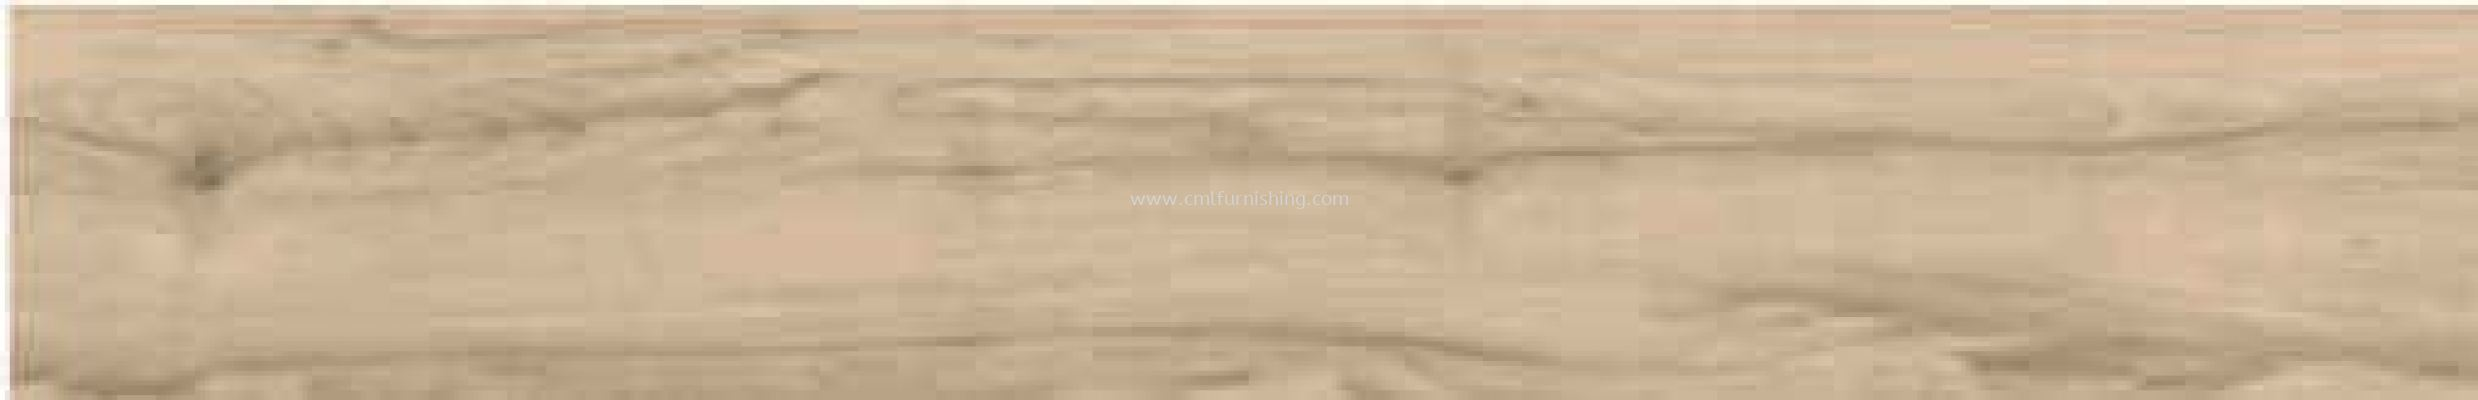 3mm-korea-vinyl-tiles-RW02